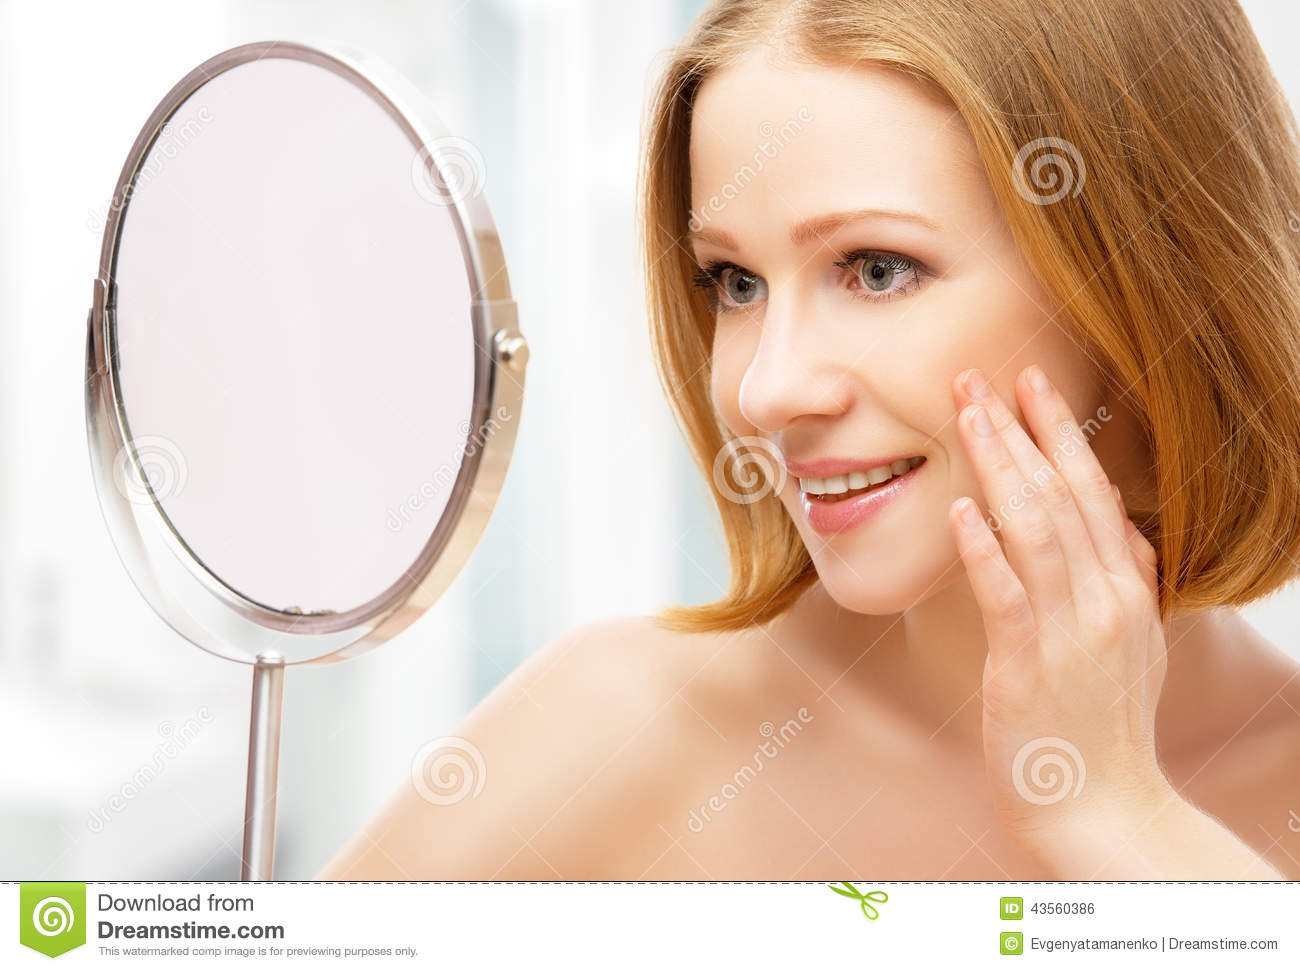 Best Natural Body Acne Treatment